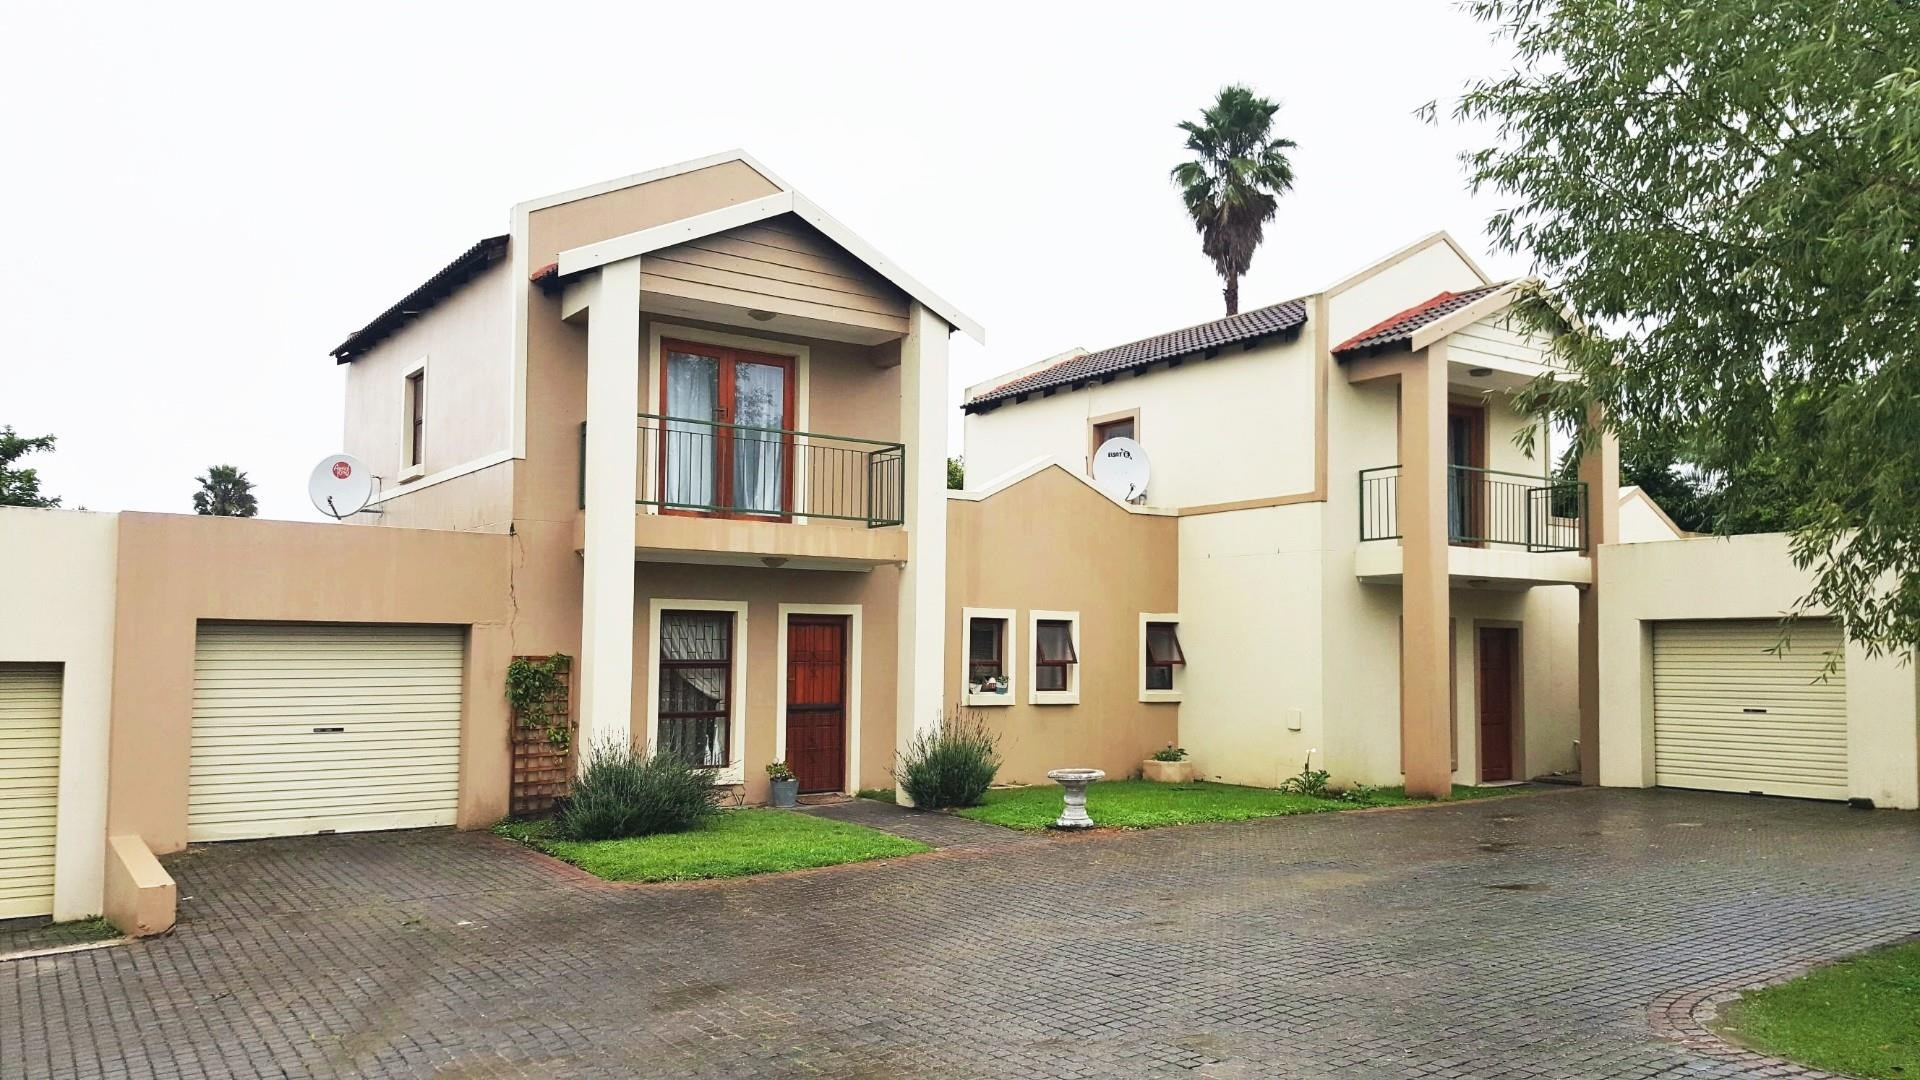 3 Bedroom House for Sale in Blanco